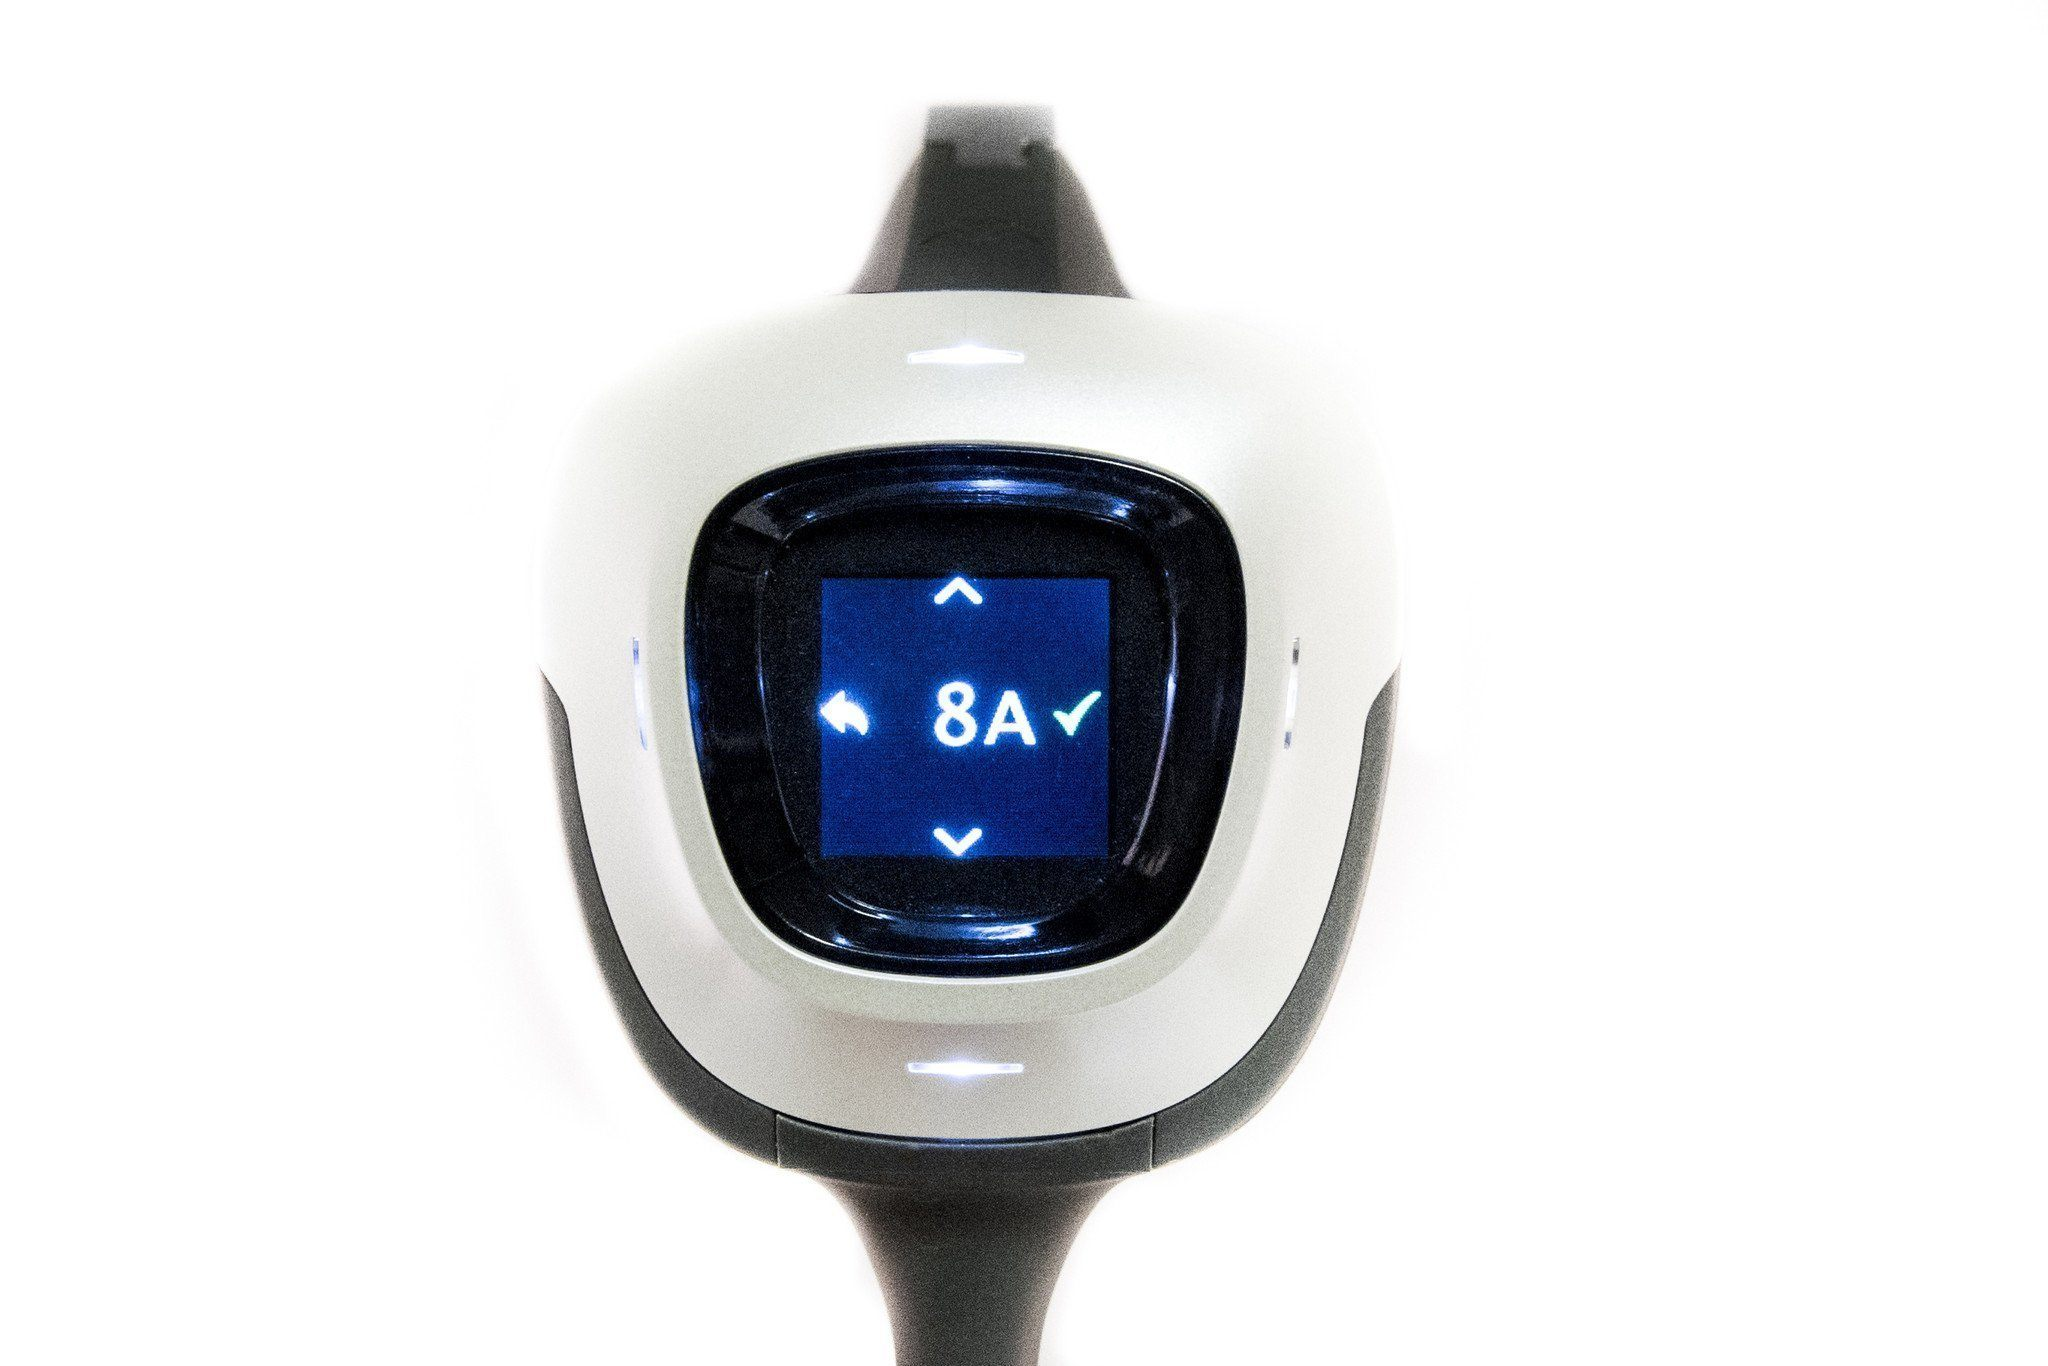 <b>Charge Amps RAY - Schuko til type 1 & type 2 - justerbar ladekabel 6A/10A/16A - 1-fas</b>  - Elbilgrossisten - 2